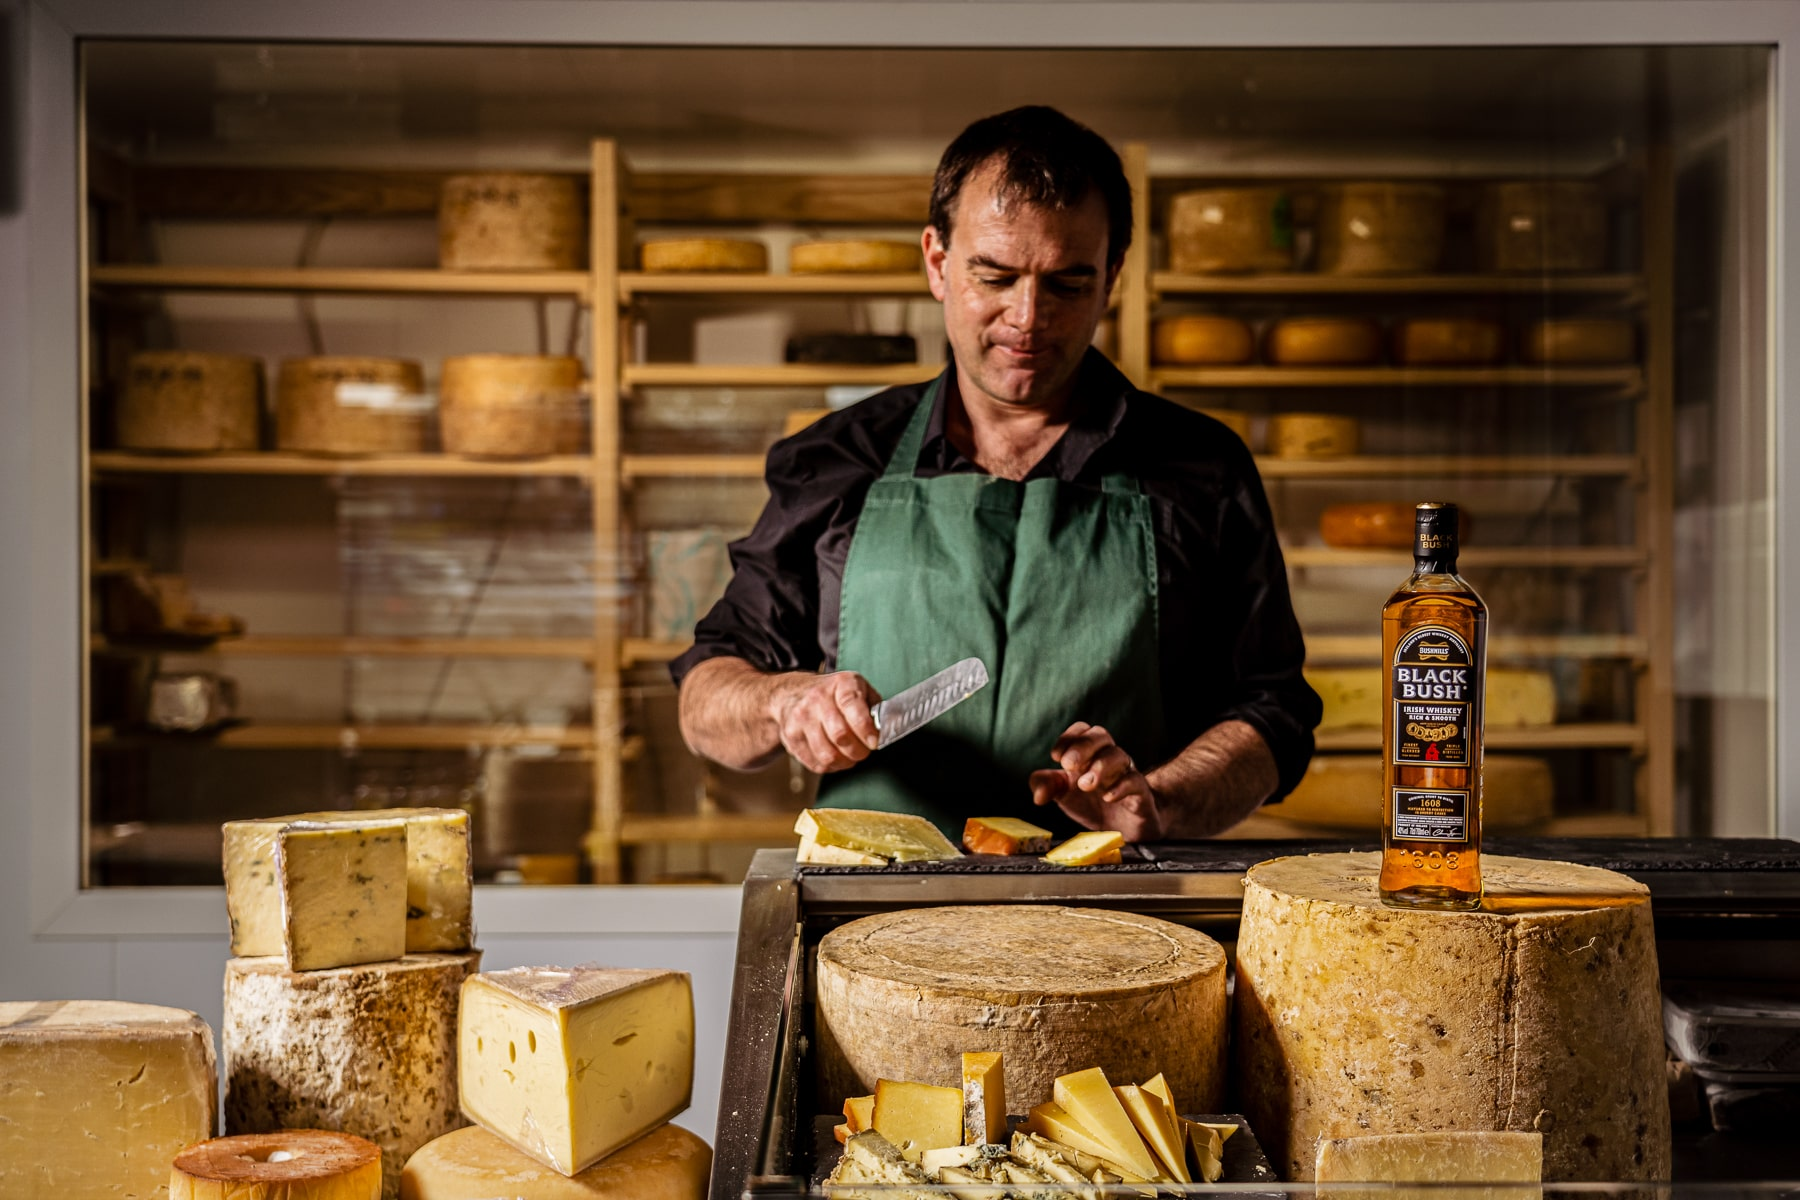 BUSHMILLS BLACK BUSH TO BRING TOGETHER THE ARTS OF WHISKEY AND CHEESE TASTING